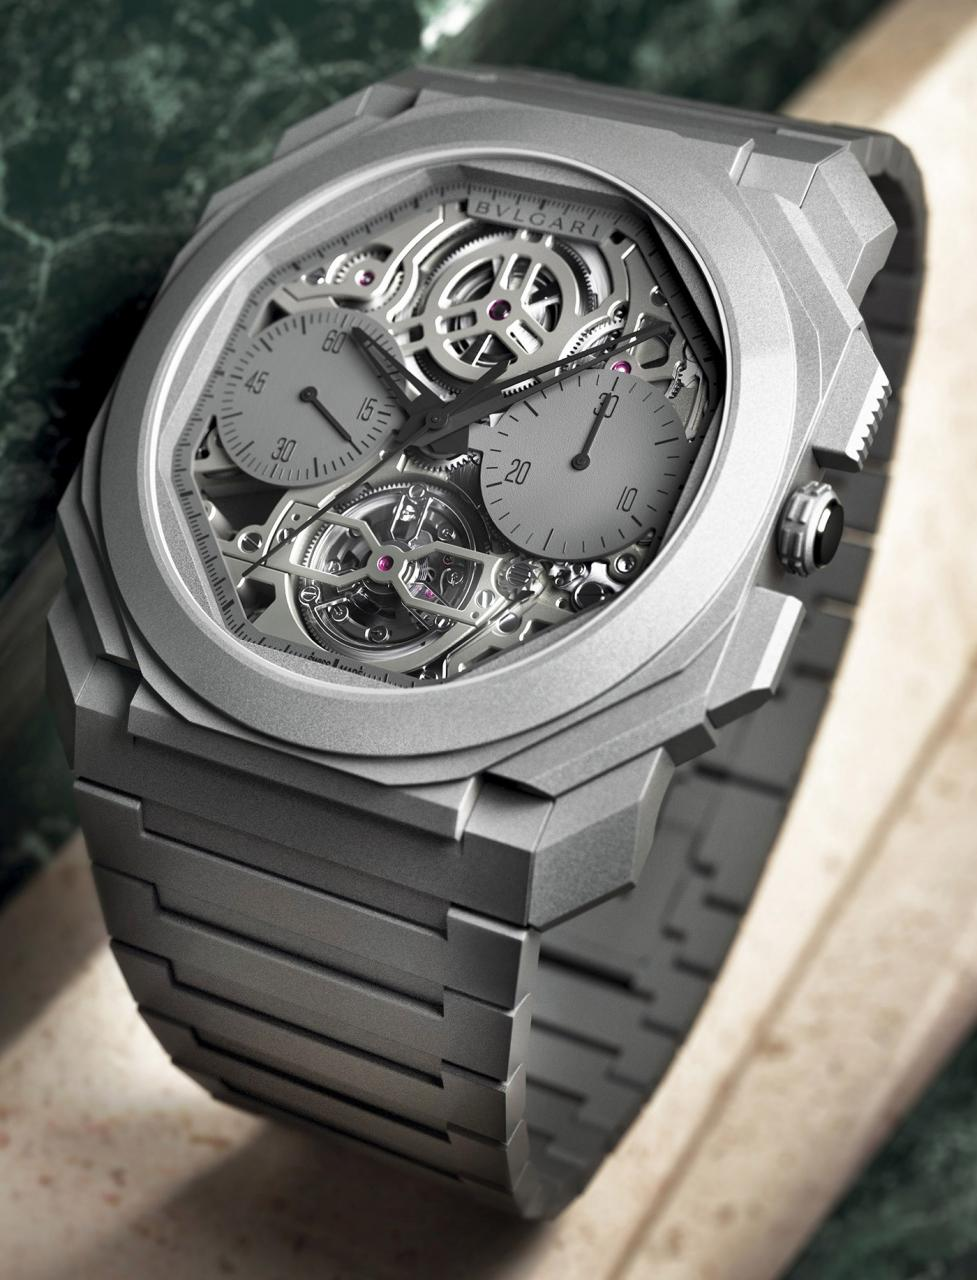 Bvlgari Octo Finissimo: A Saga Of Record-Breaking Elegance Fake Watch Releases